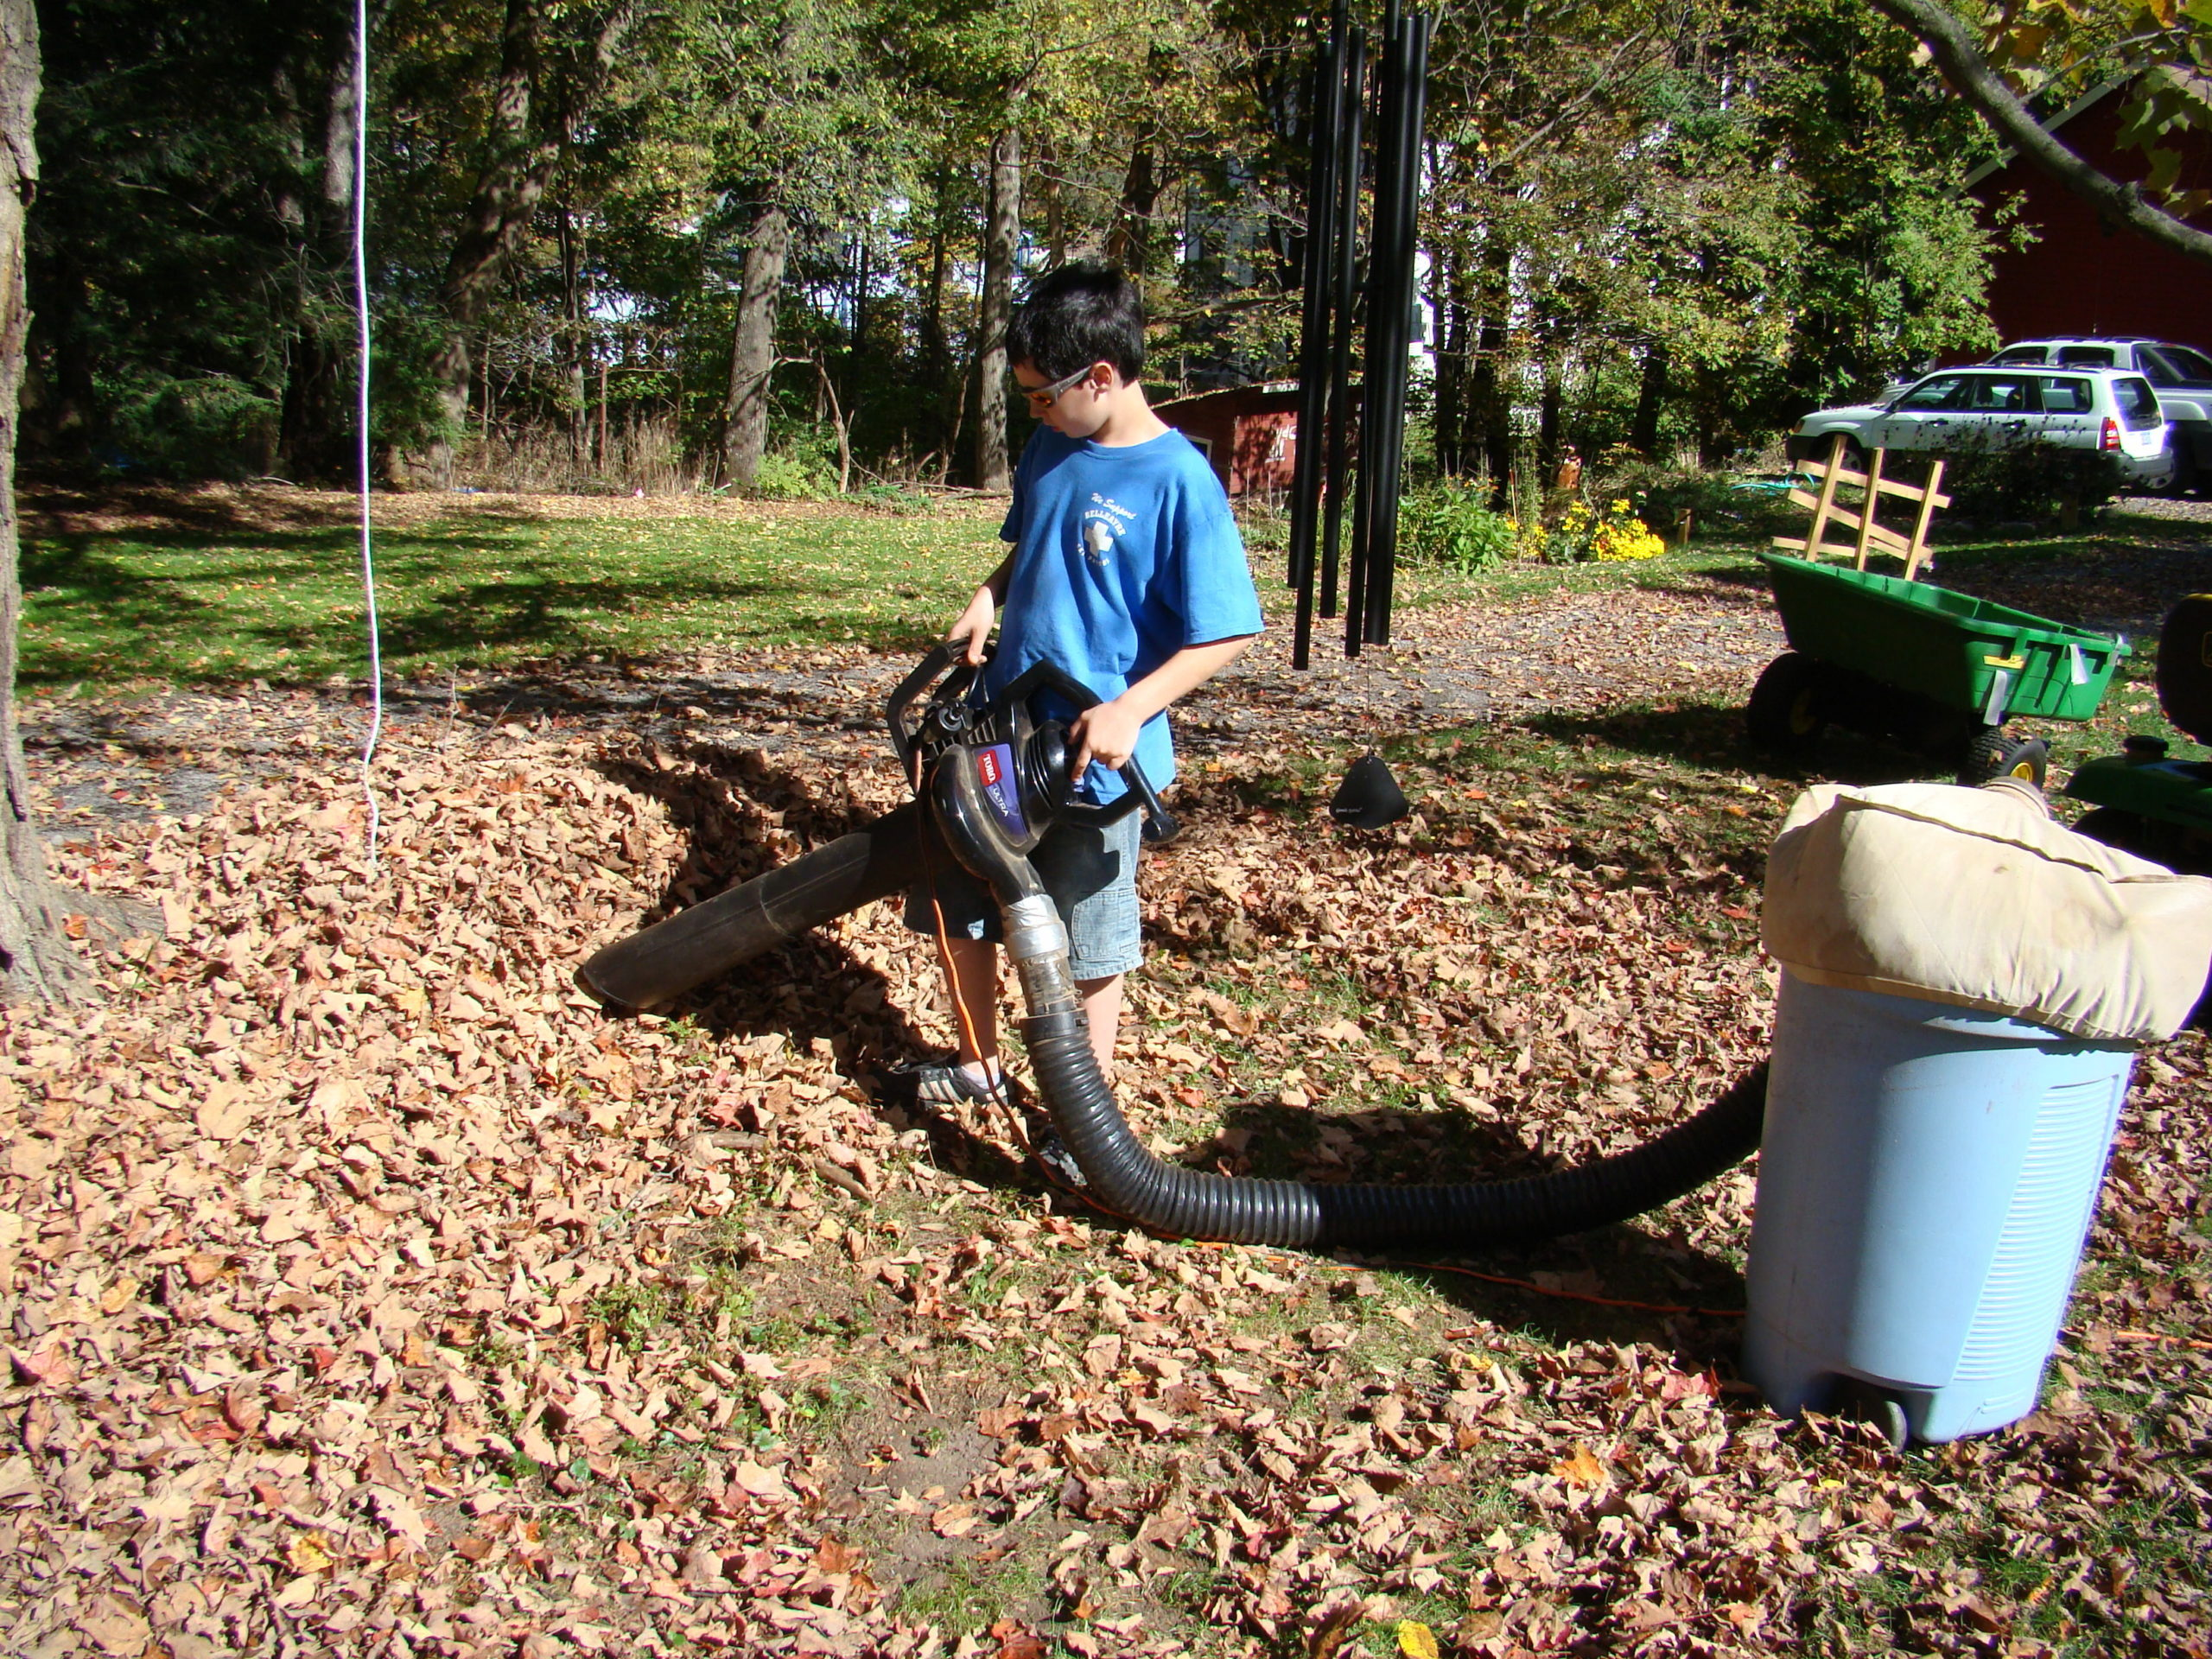 With leaves all blown to a central spot, this young man uses an electric blower/shredder to vacuum up the collected leaves. A blade inside the blower shreds the leaves and pushes the leaves through a tube into a bag and large plastic drum. The shredded leaves can then be added to compost or used as garden mulch.